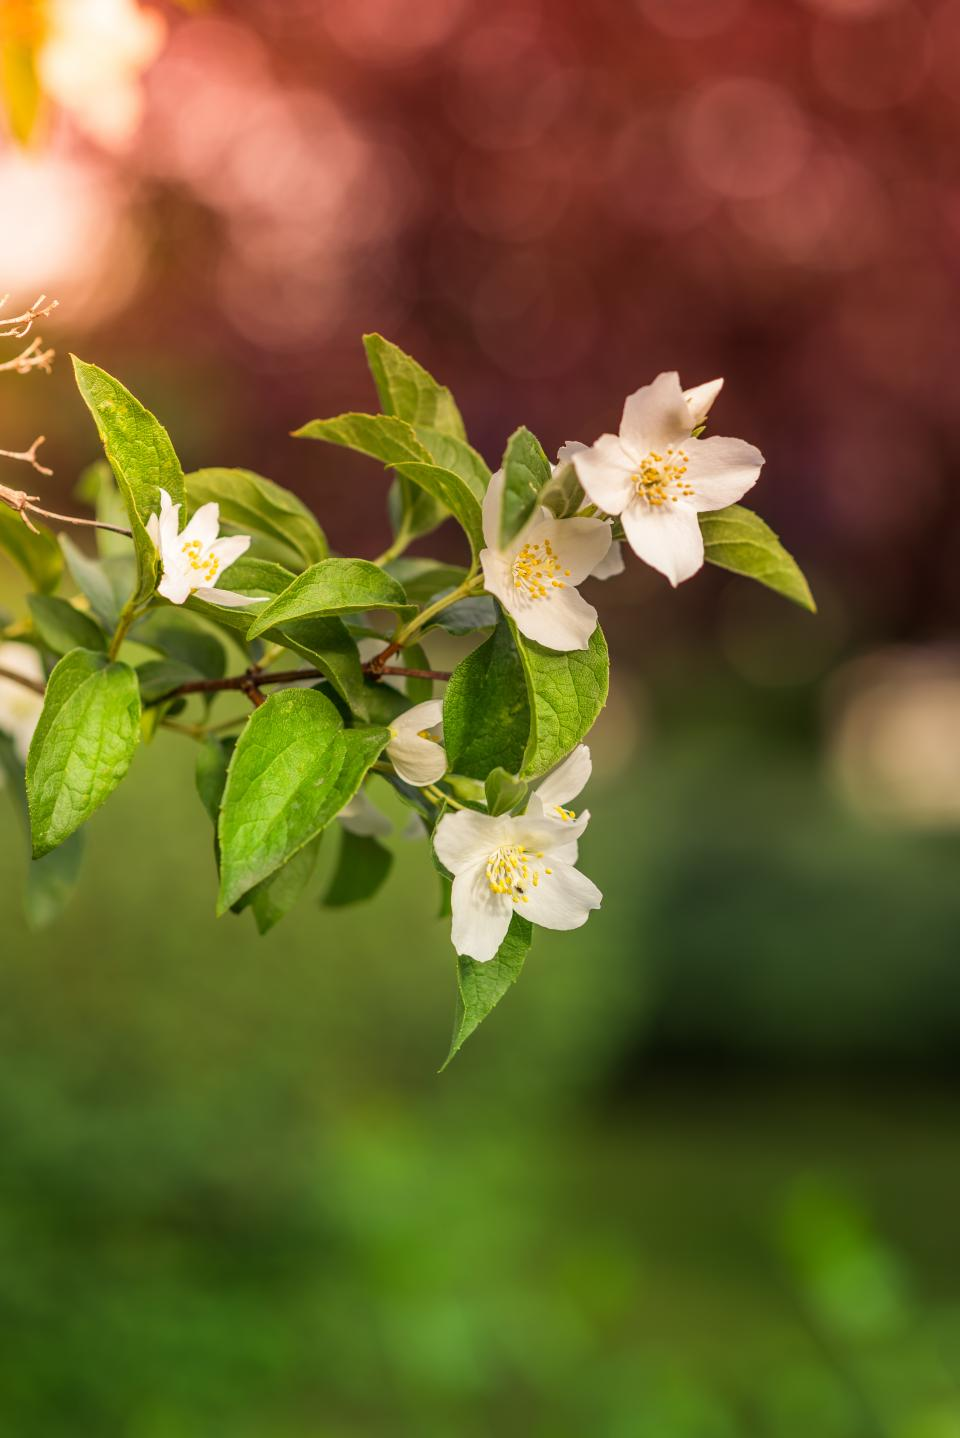 flower bloom petal nature plant blur bokeh